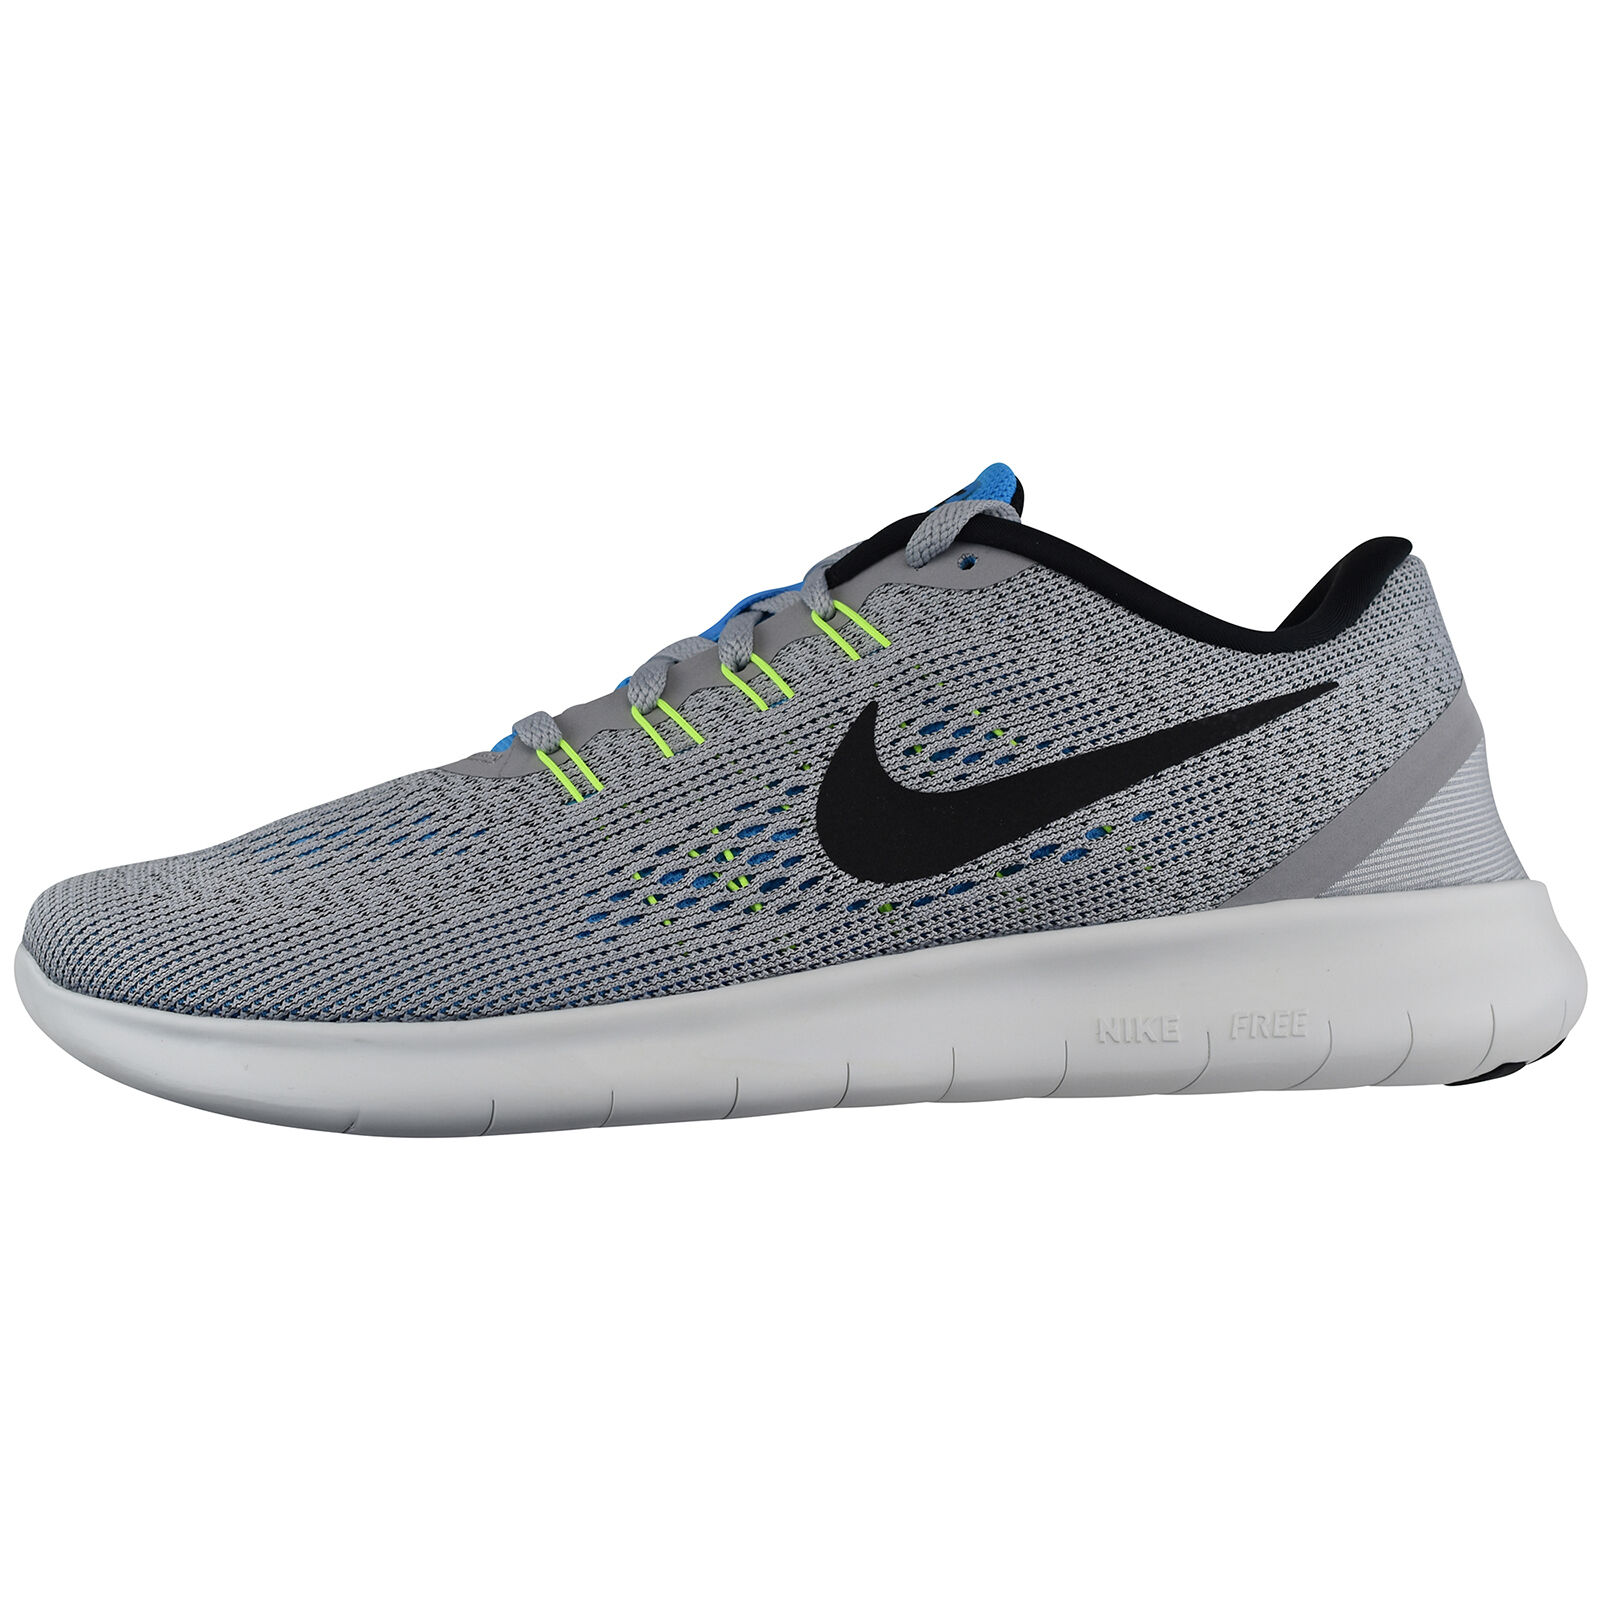 Nike Free RN 831508-005 Lifestyle Running shoes Running Running Casual Trainers